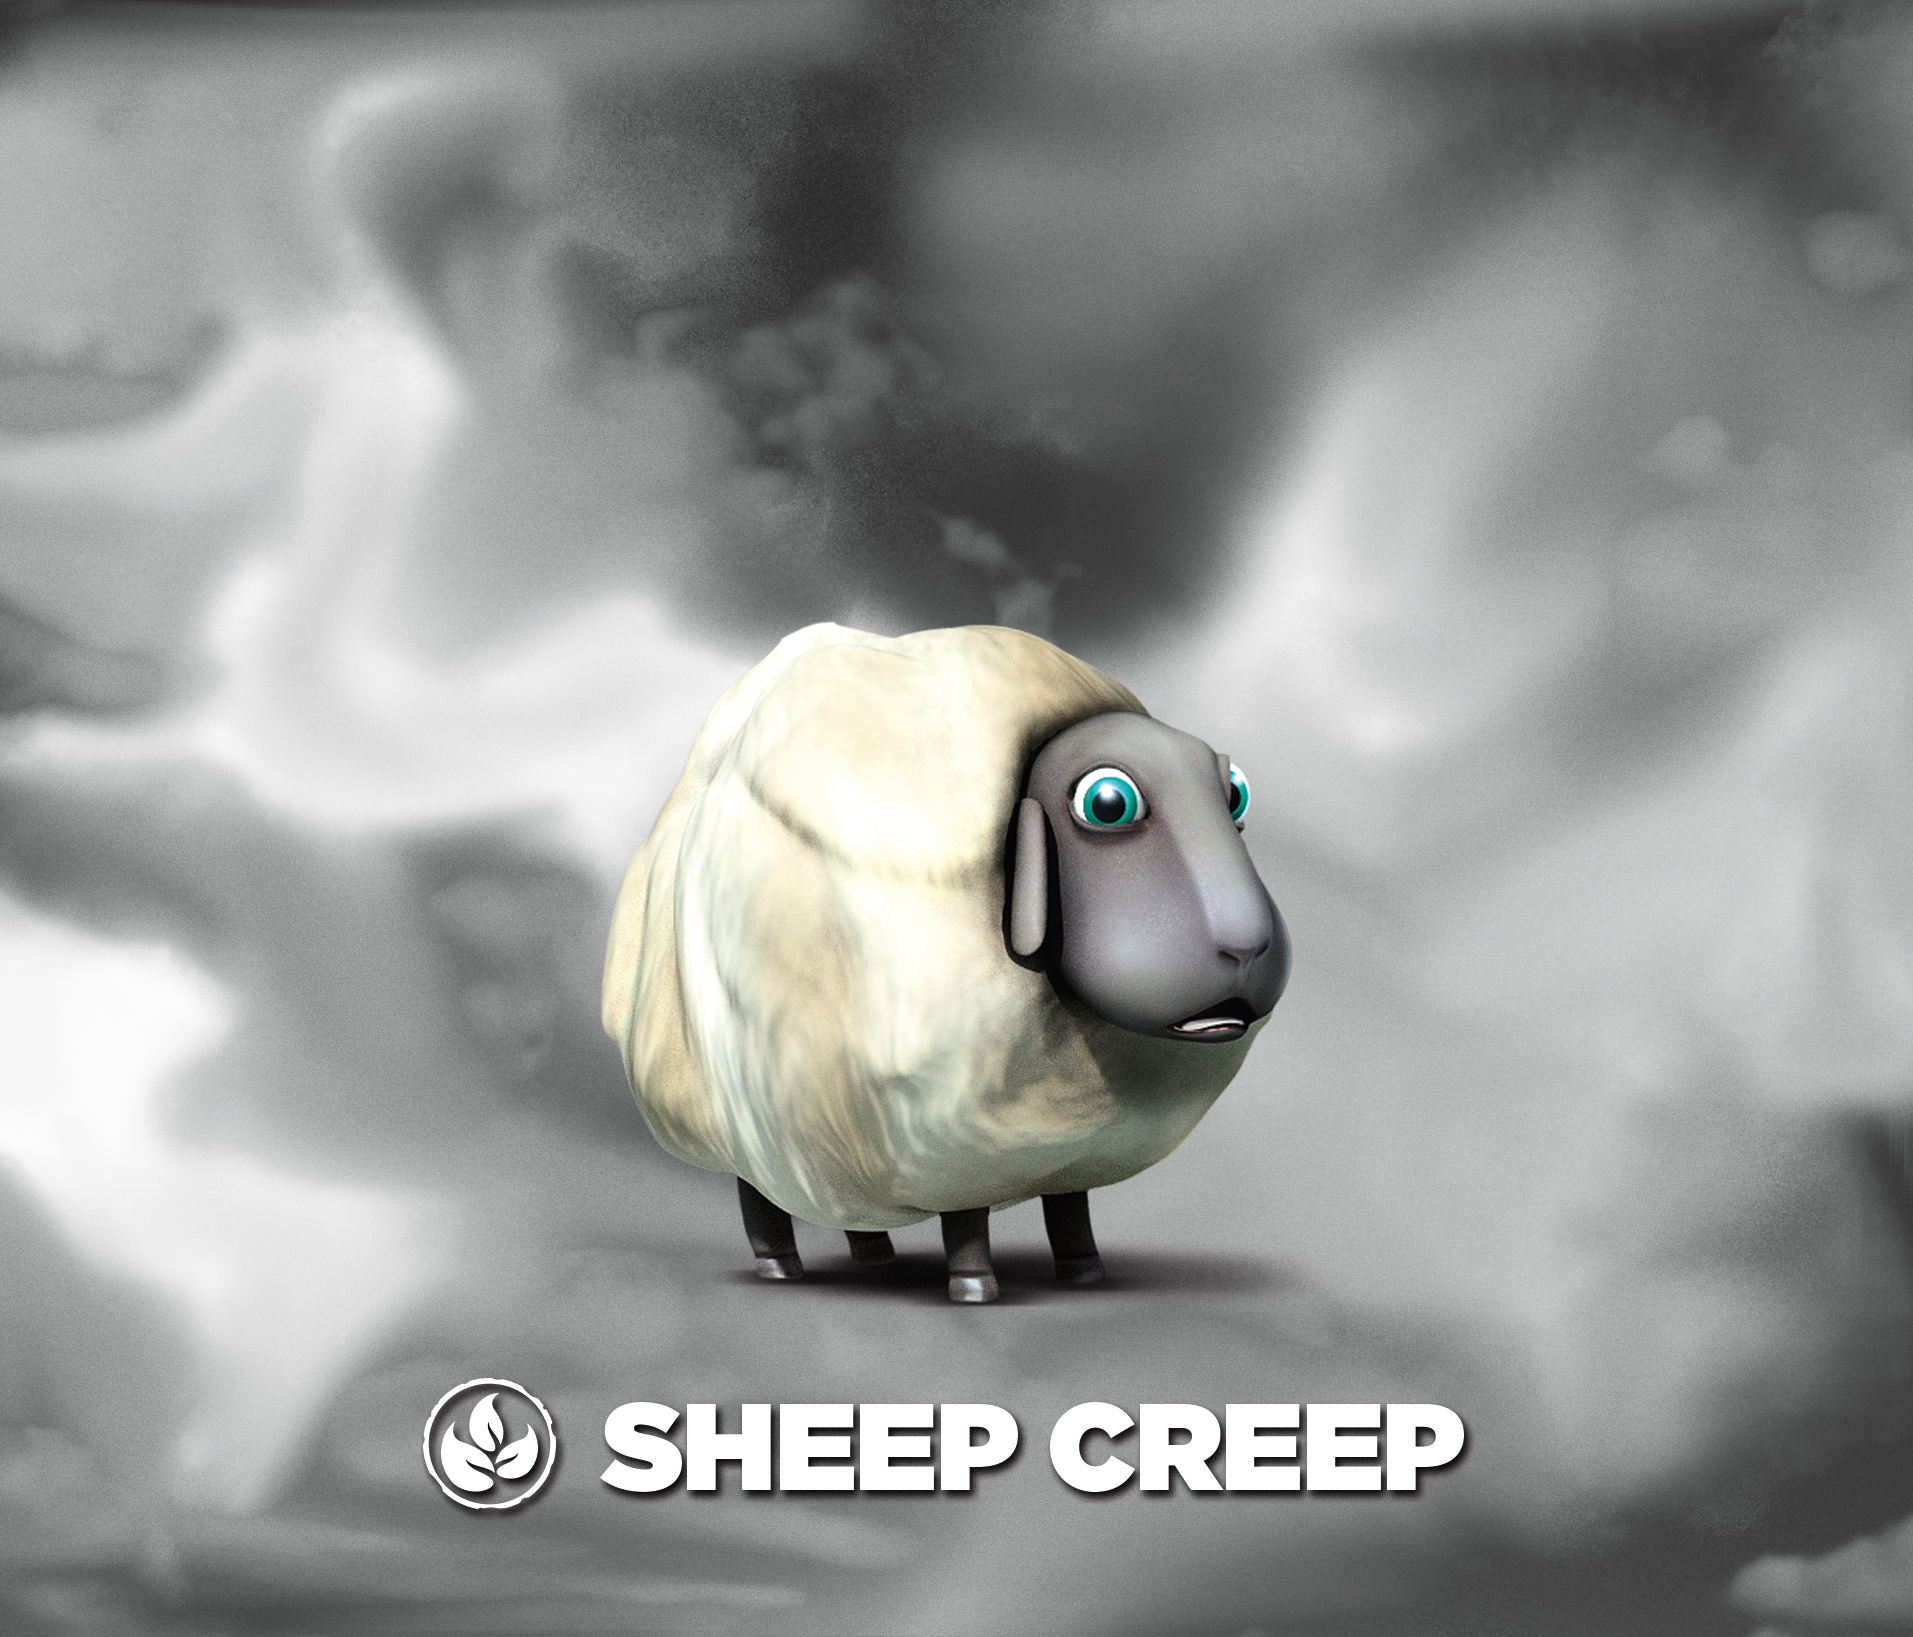 Sheep Creep